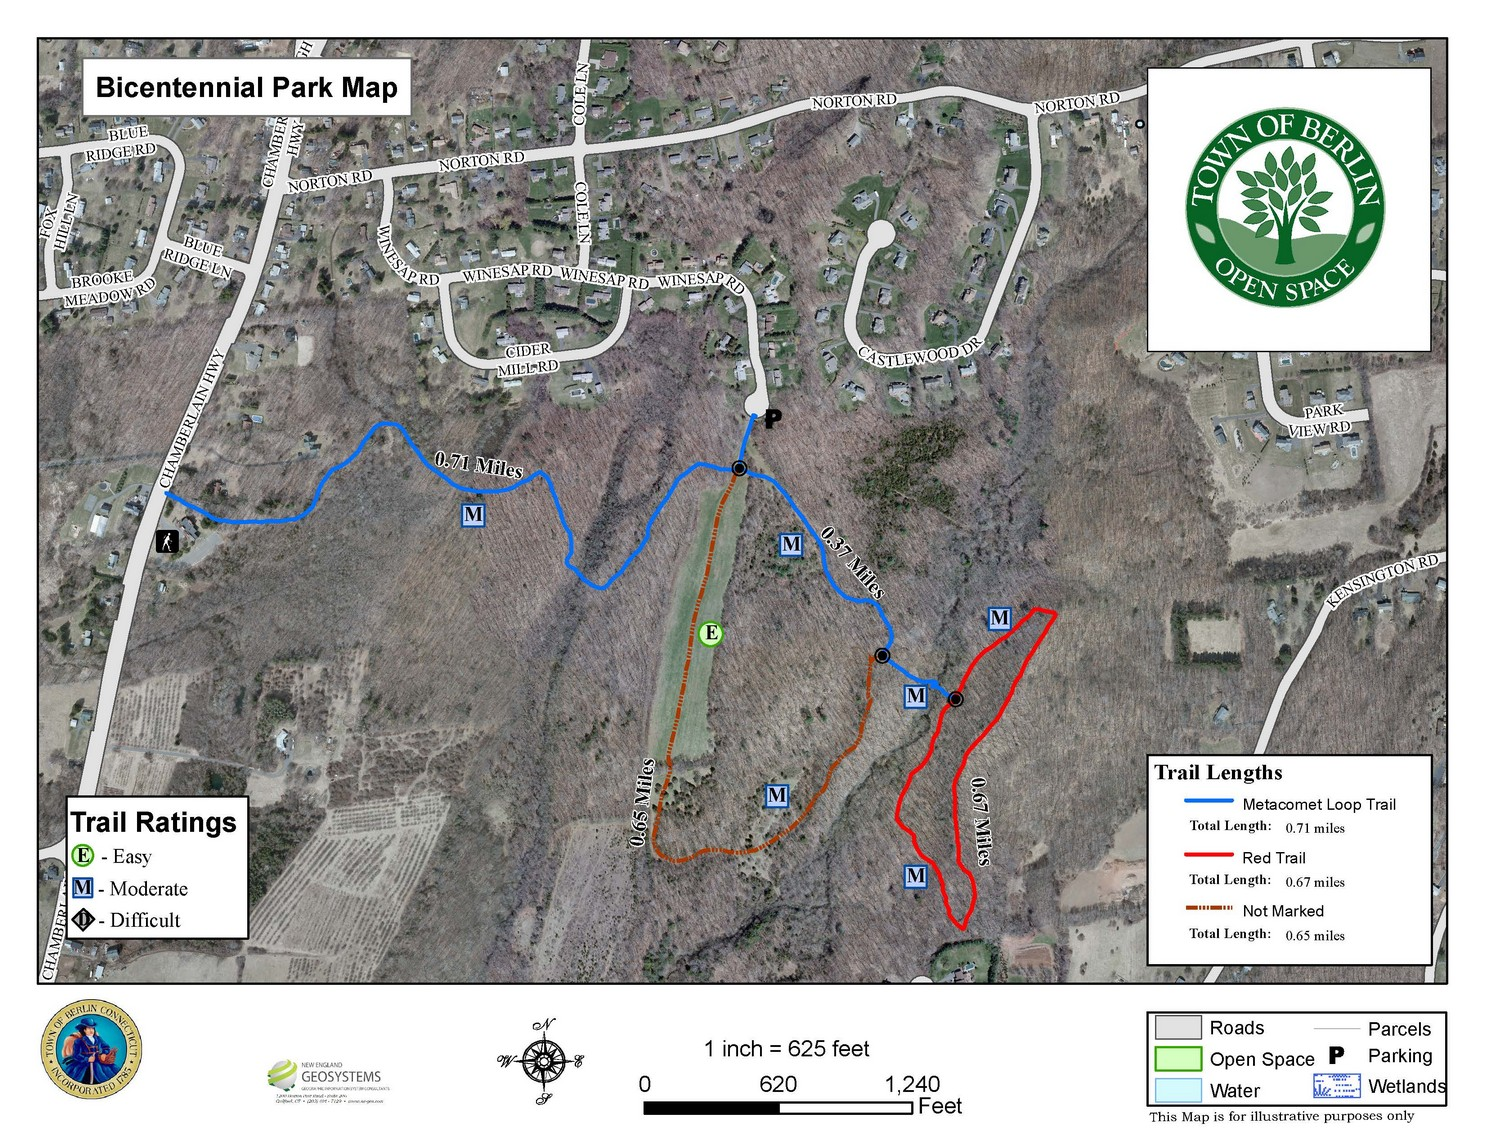 Preview And Extent Bicentennial Park Map